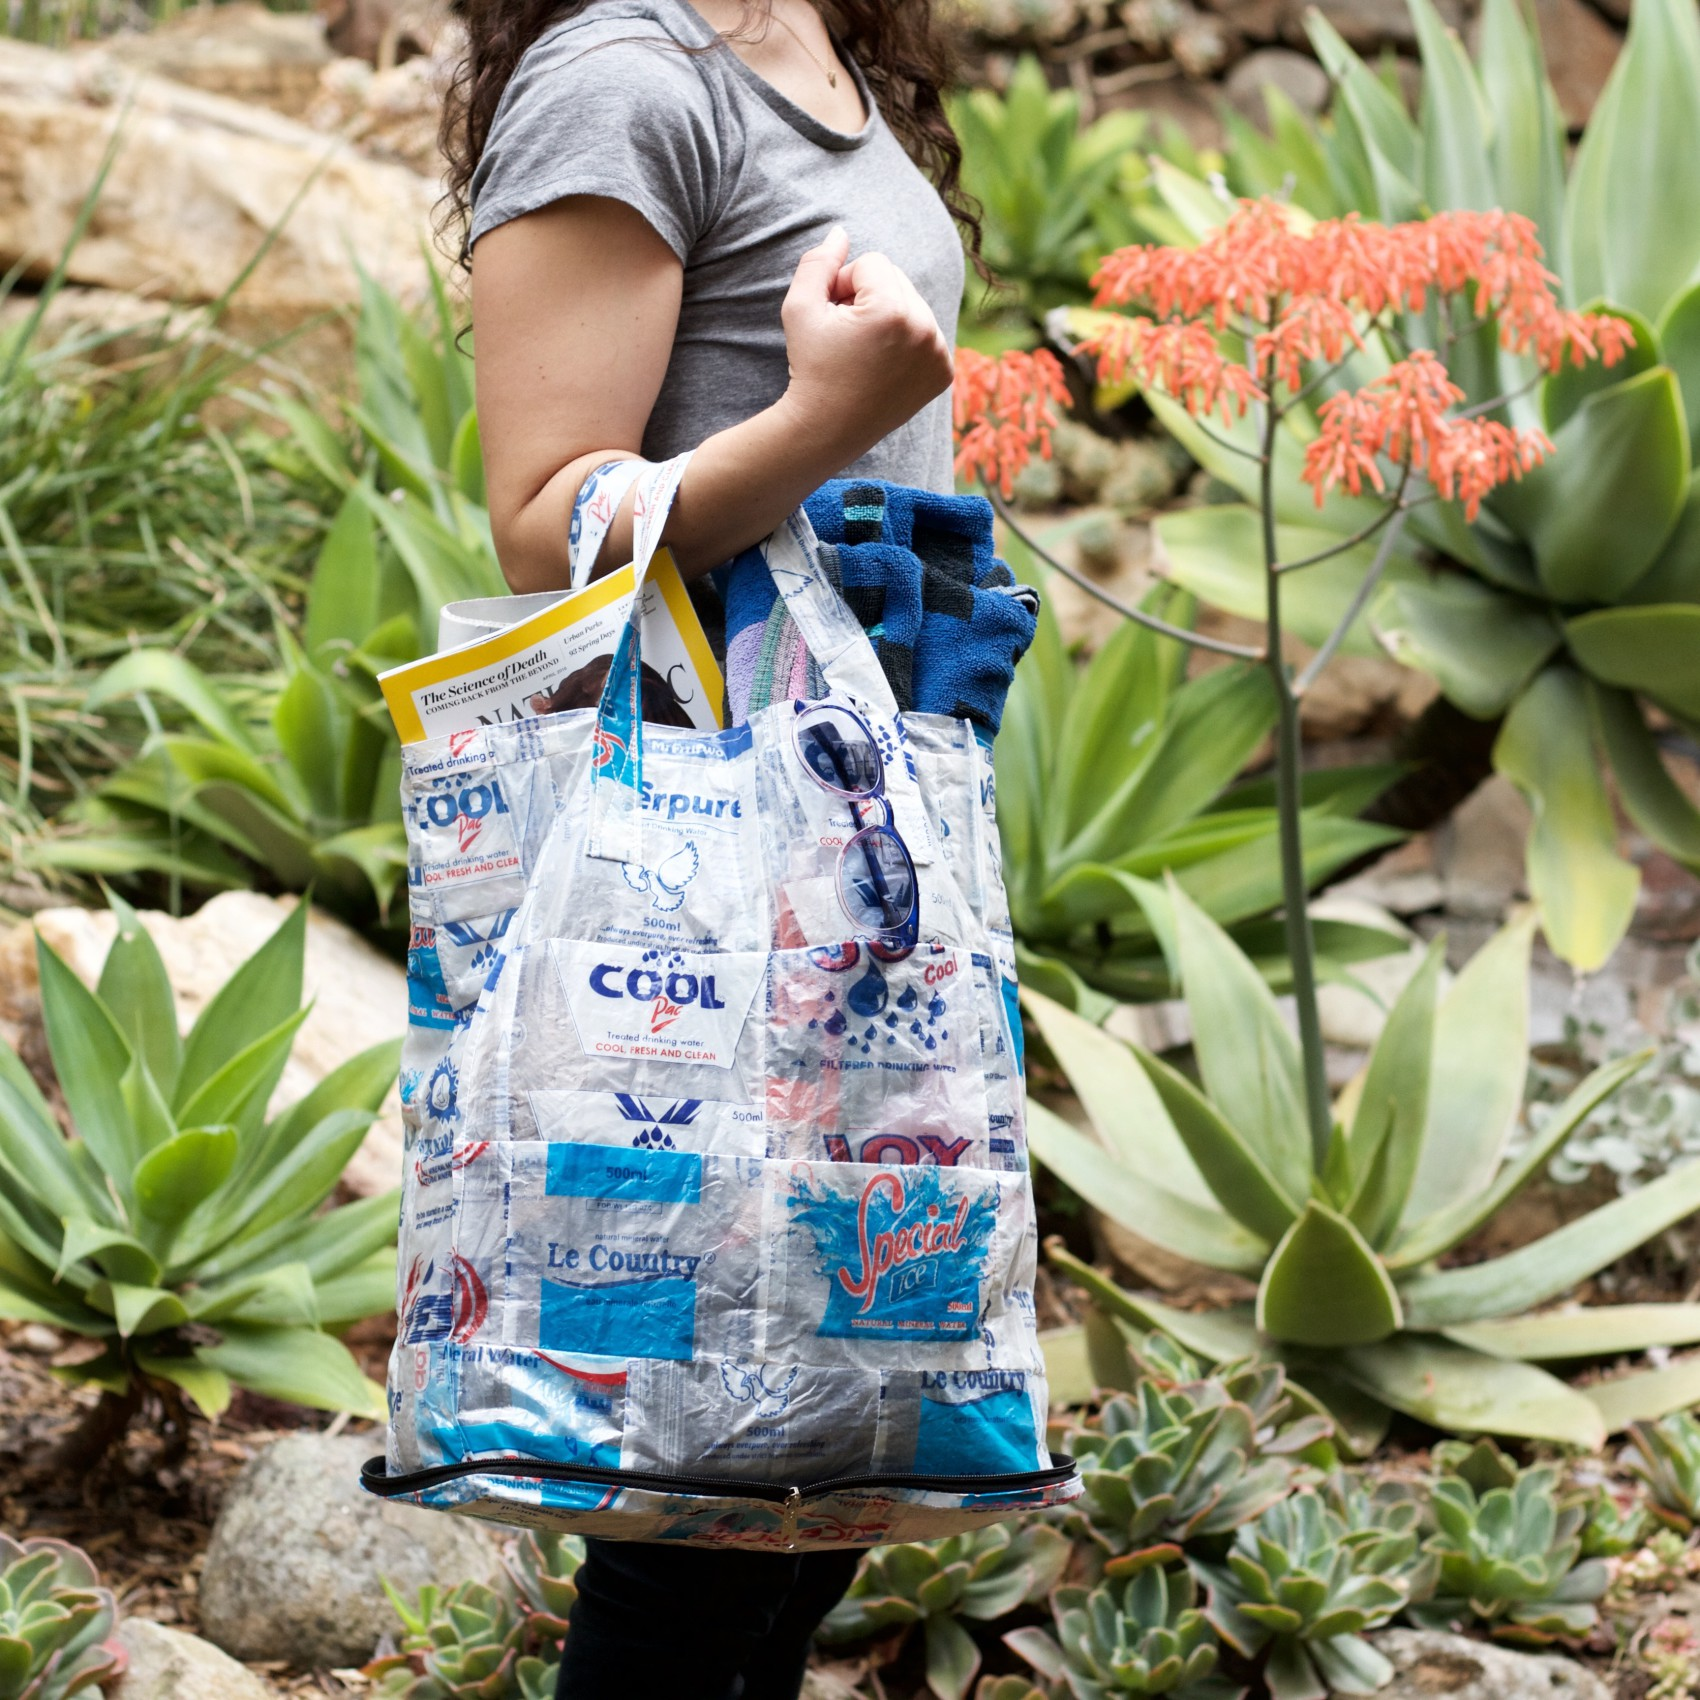 globein trashy bags hydrate upcycled water satchet bag